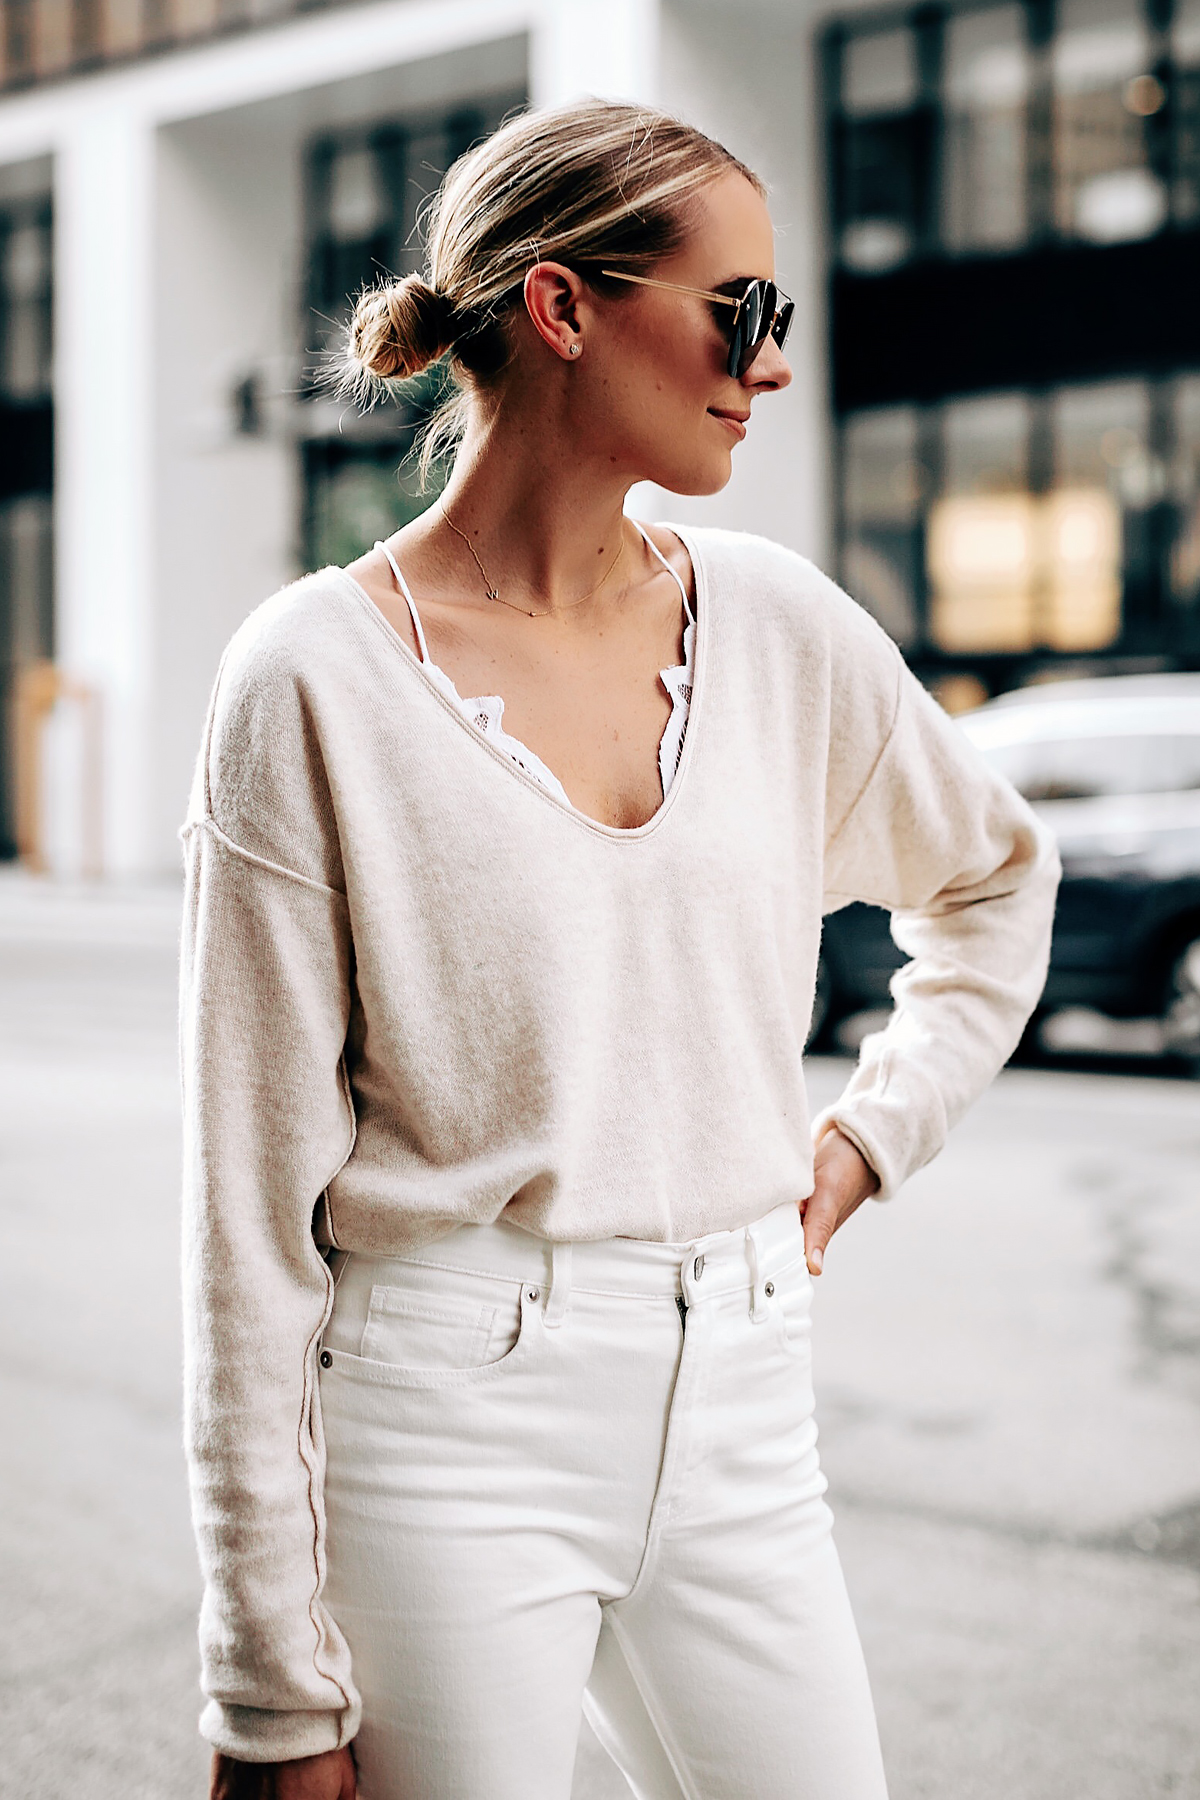 Blonde Woman Wearing Free People Ivory Cashmere Sweater White Lace Bralette Everlane White Jeans Fashion Jackson San Diego Fashion Blogger Street Style